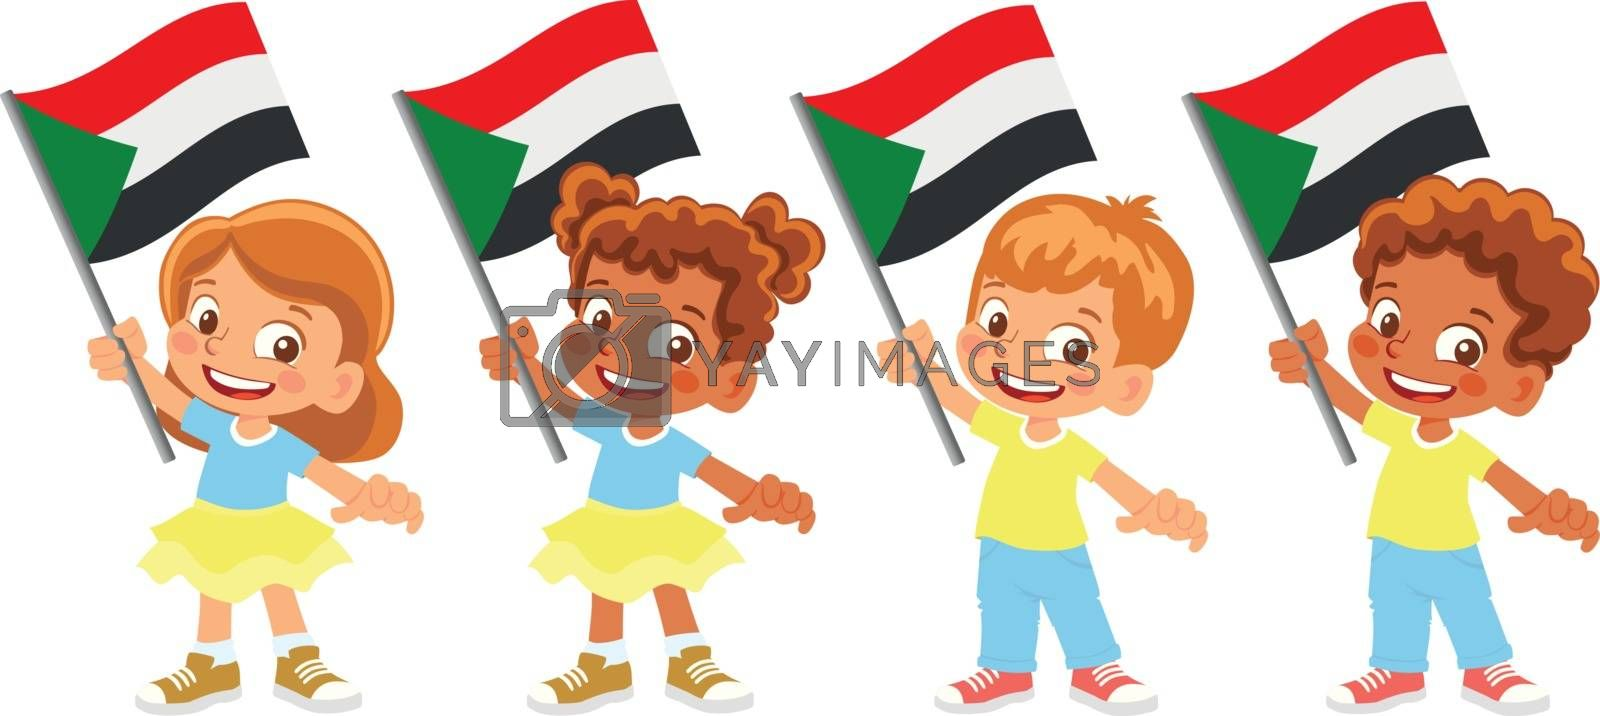 Sudan flag in hand. Children holding flag. National flag of Sudan vector